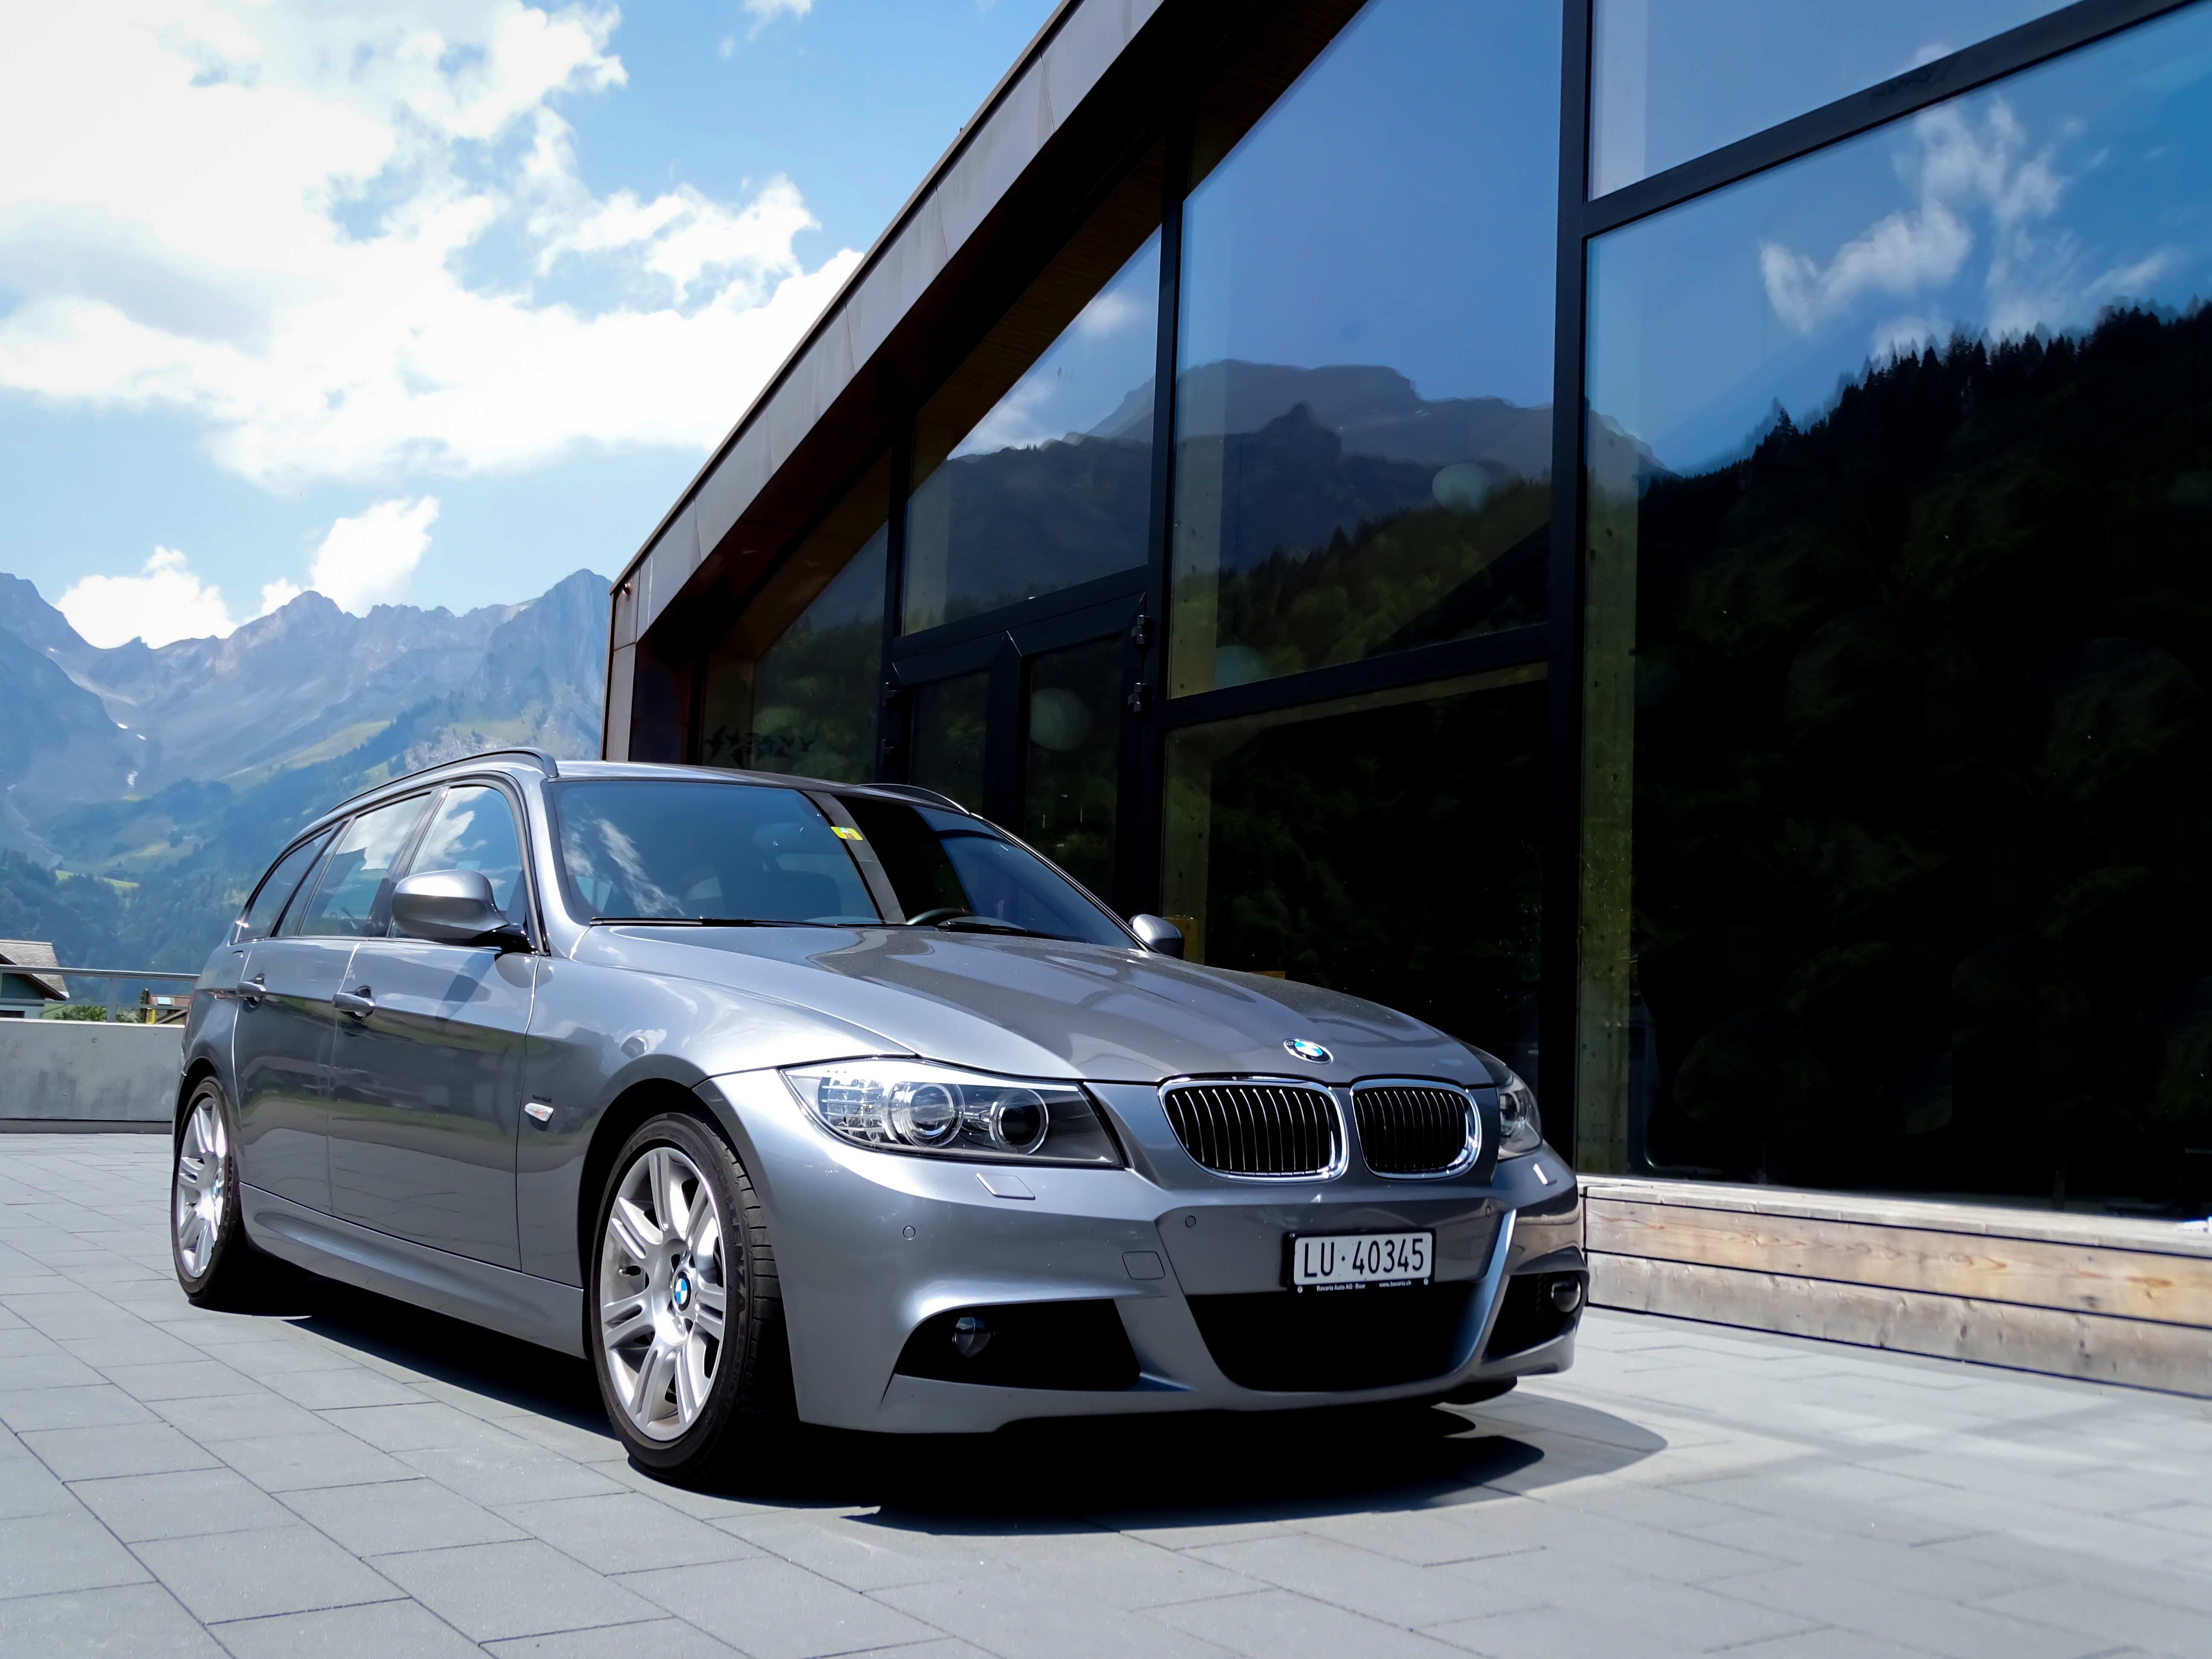 Bmw Switzerland Hobbiesxstyle